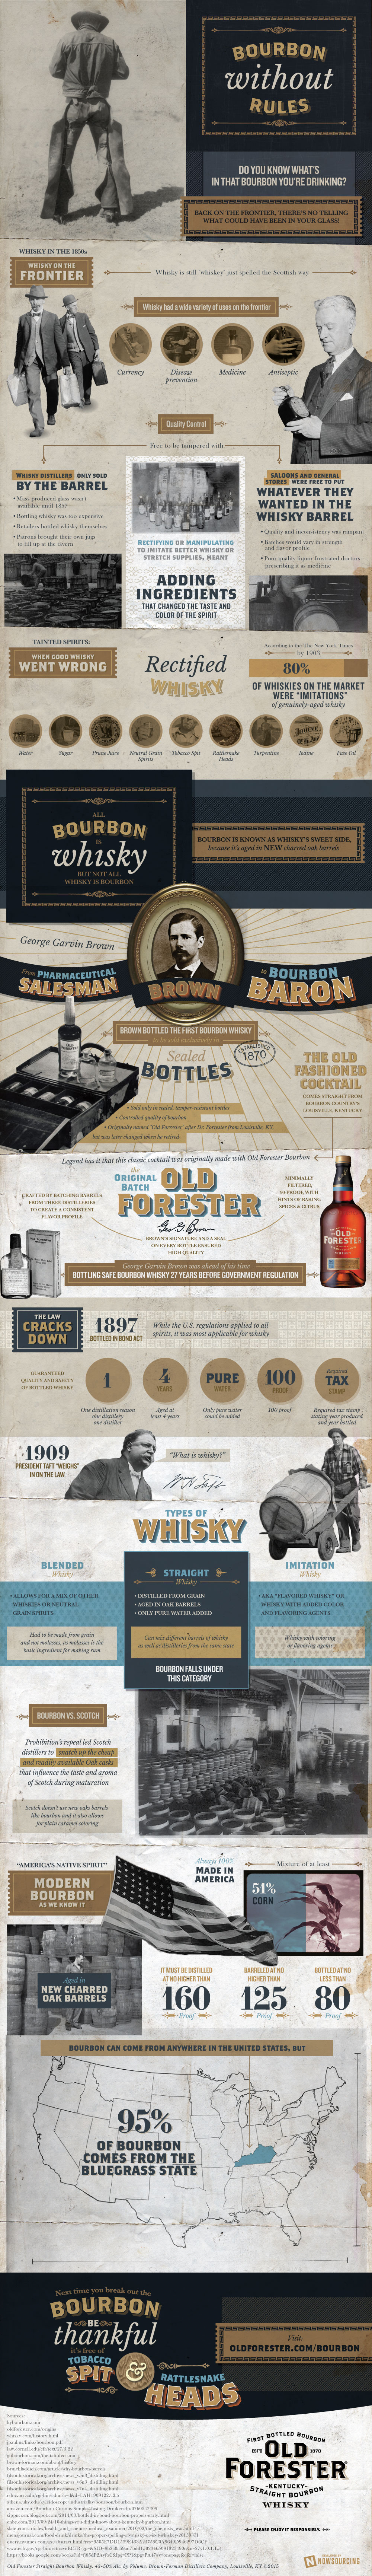 Old Forester #infographic